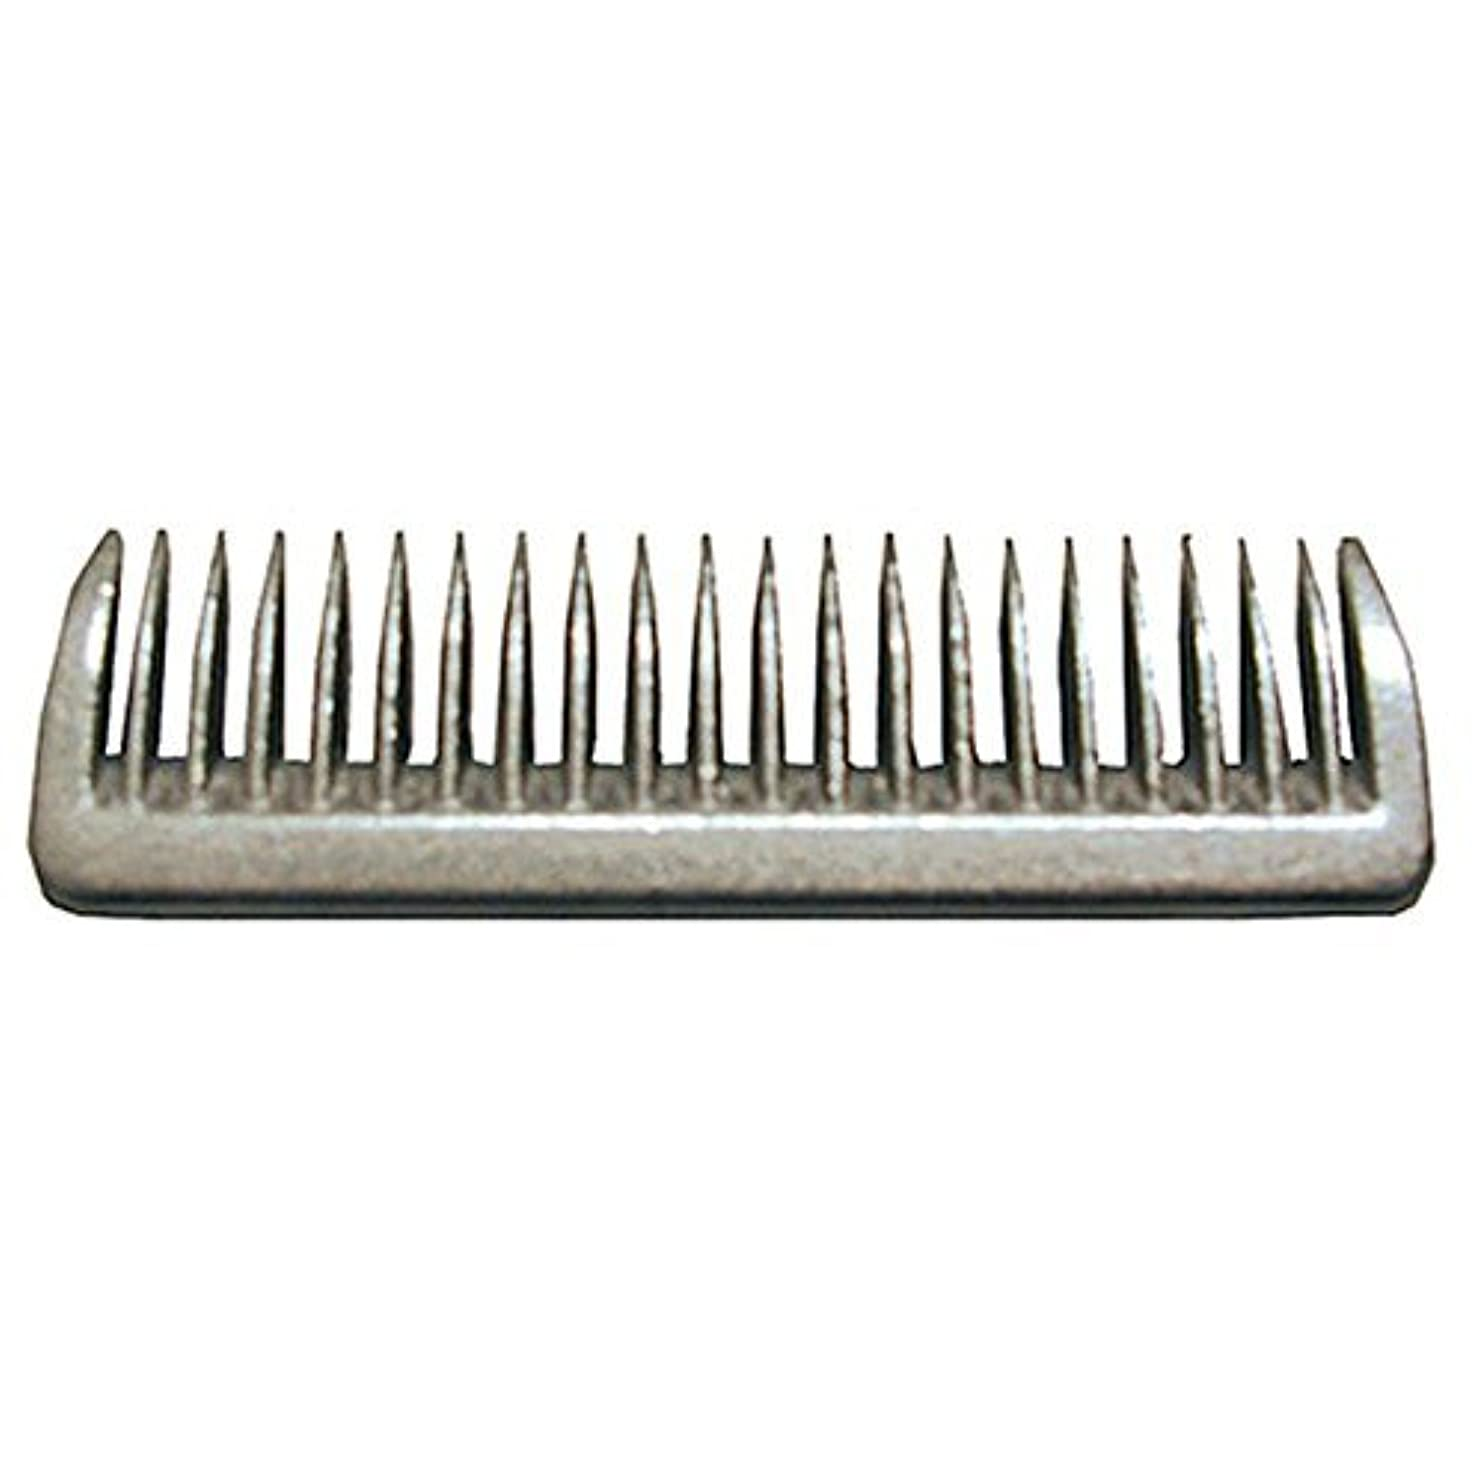 貝殻赤半島Intrepid International Aluminum Pulling Comb [並行輸入品]